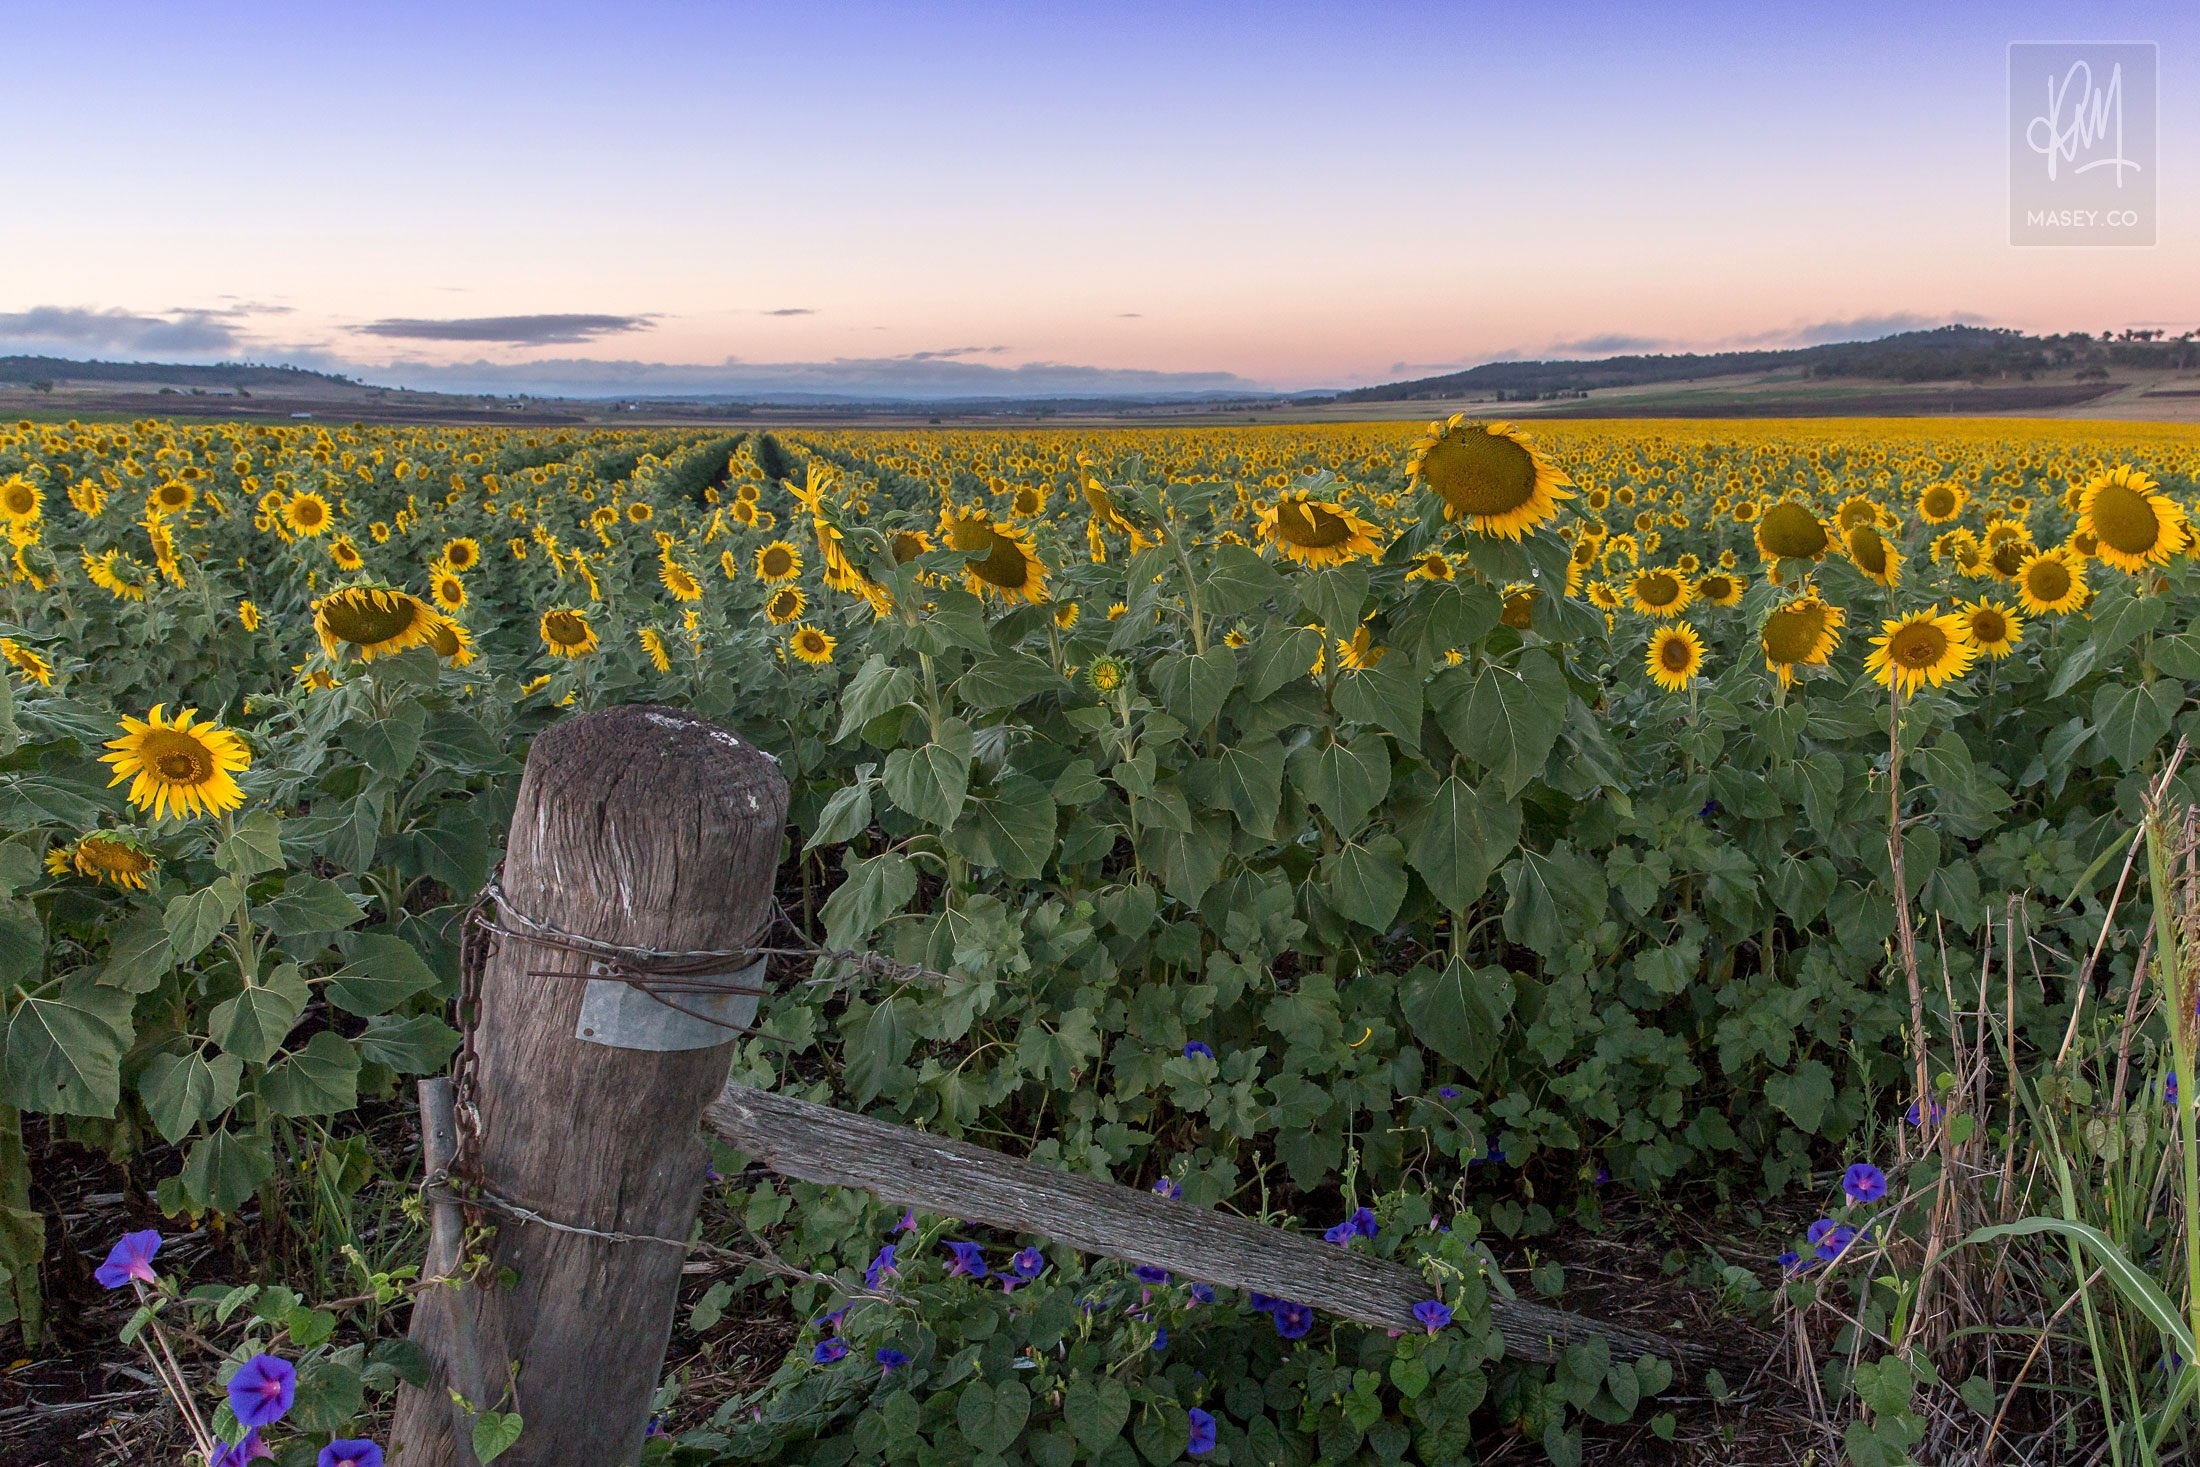 Rows of sunflowers following the last striking rays of sun to the west